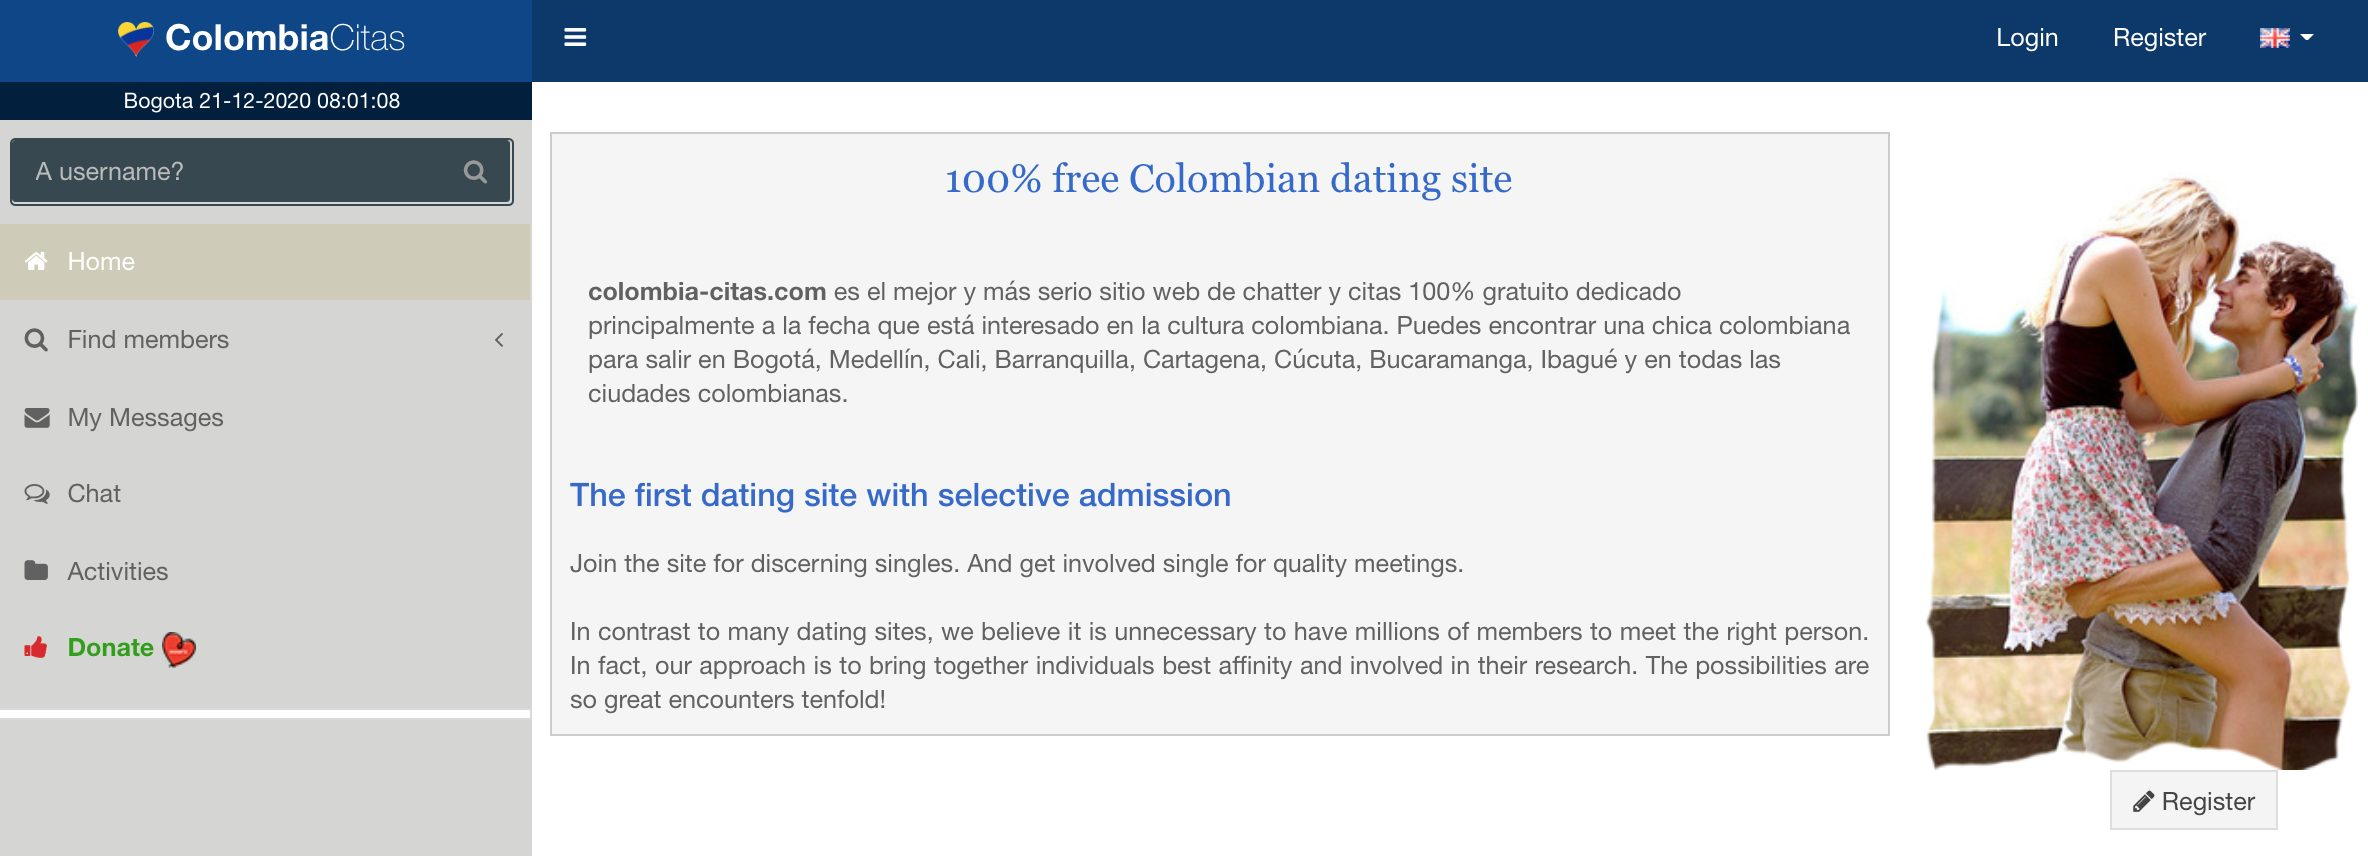 Сolombia-Citas main page